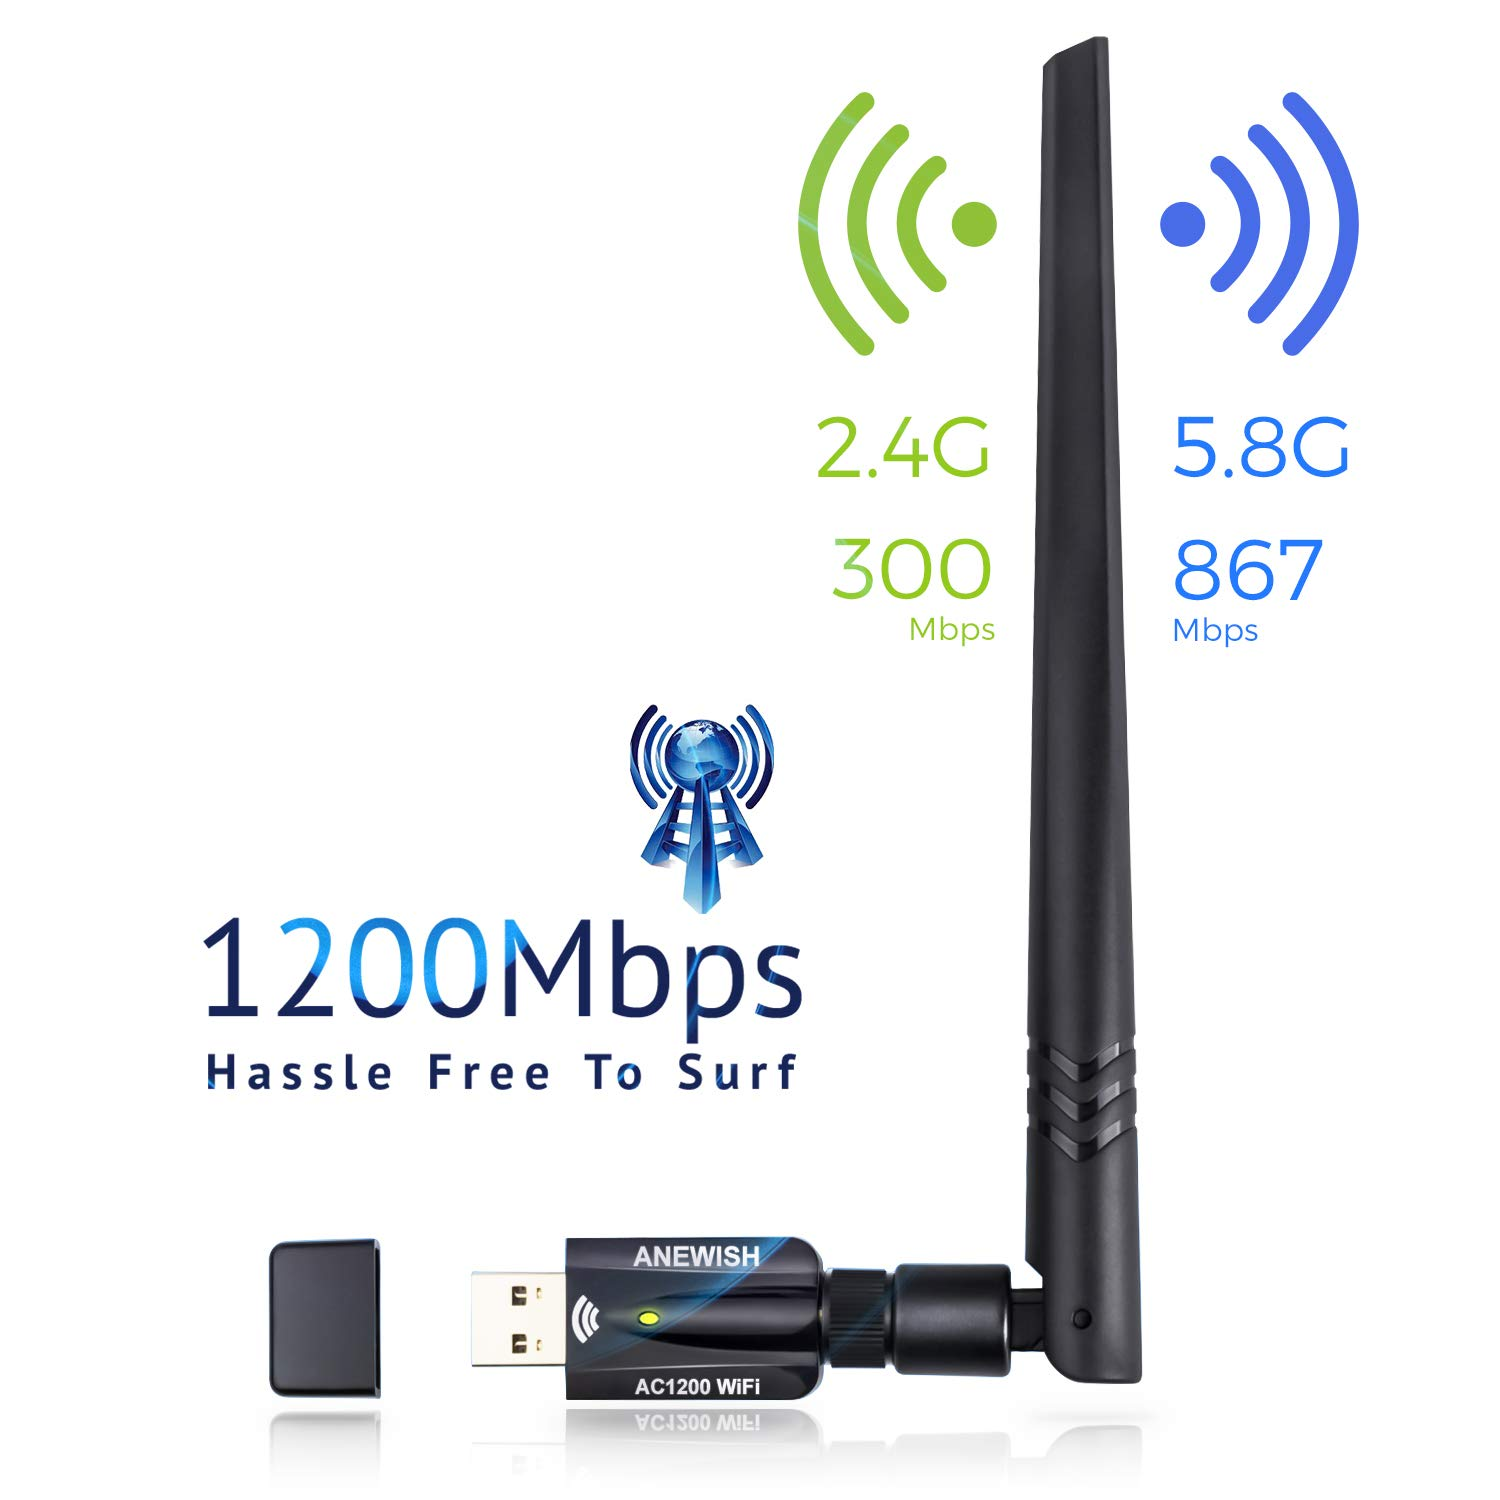 Wifi Adapter for PC 1200Mbps Wireless USB WiFi Adapter 3.0 Network LAN Card with 5dBi Antenna Dual Band 2.4G/5G 802.11ac WiFi Adapter Compatible PC/Desktop/Laptop/Tablet, Windows 10/8.1/8/7/XP, Mac OS by AE WISH ANEWISH